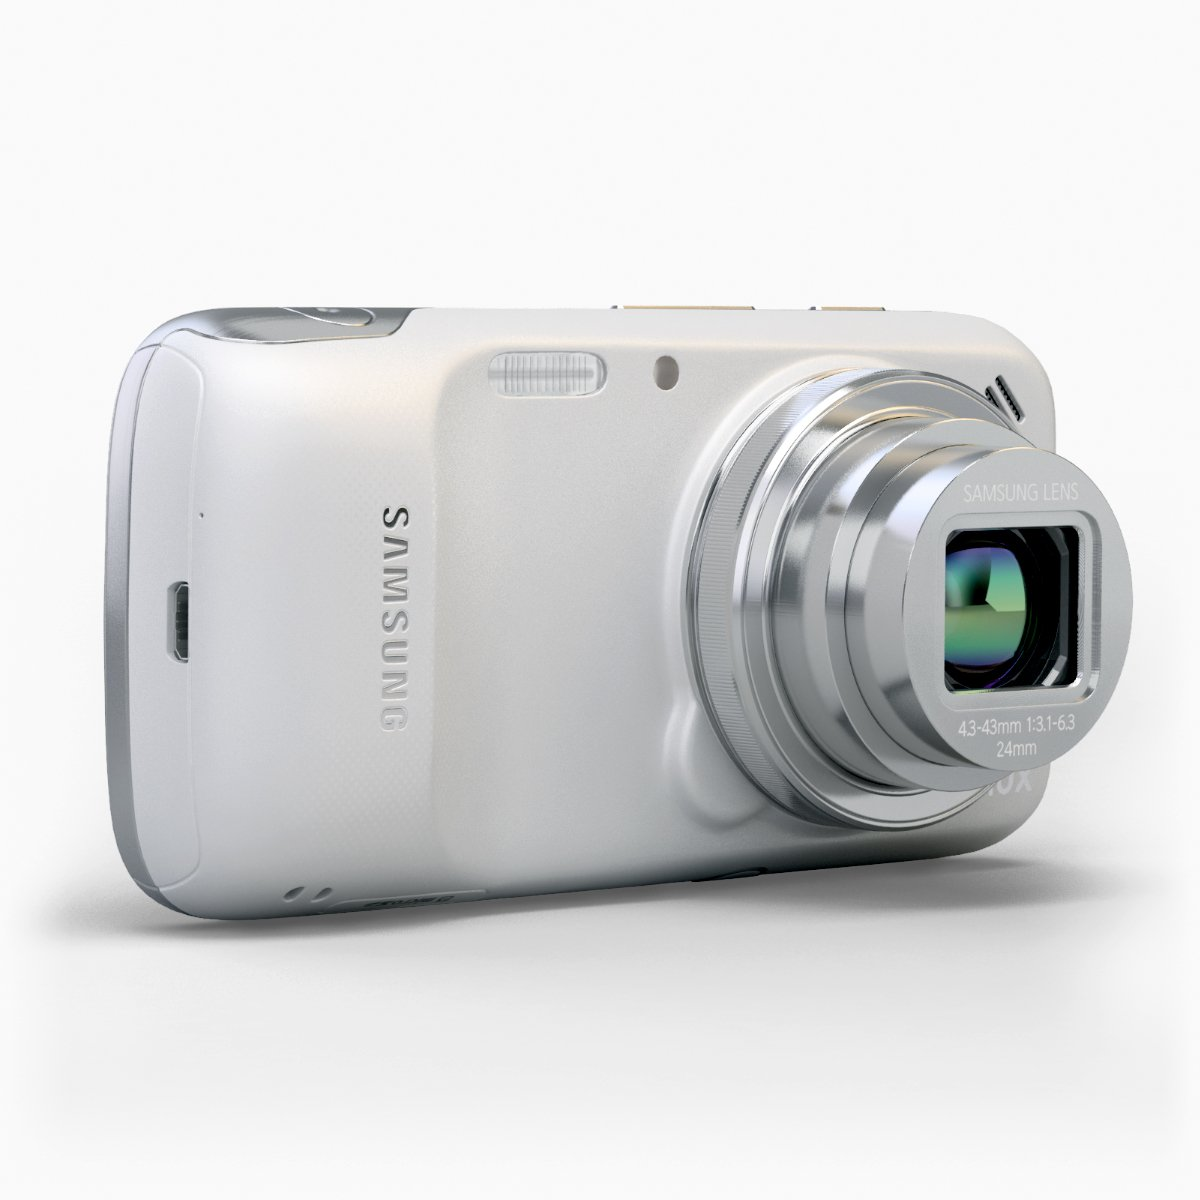 Galaxy S4 Zoom 3d Model In Phone And Cell 3dexport Samsung Black